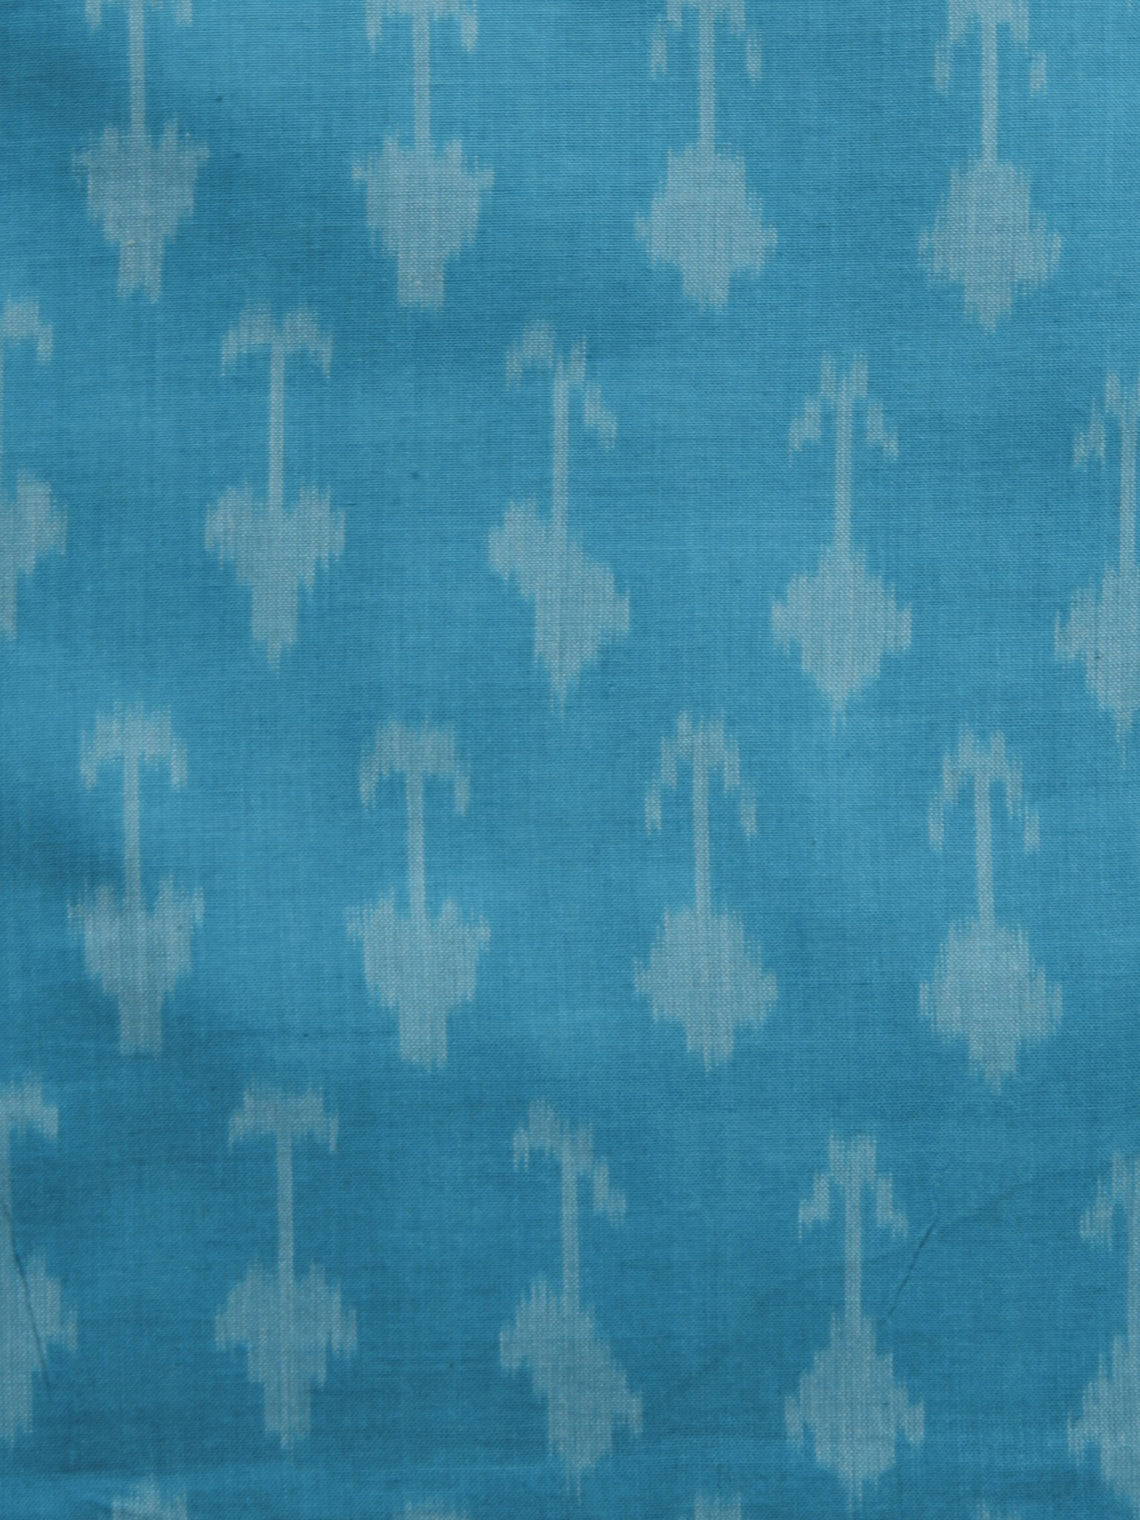 Teal Blue Ivory Pochampally Hand Weaved Ikat Mercerised Cotton Fabric Per Meter - F002F1040